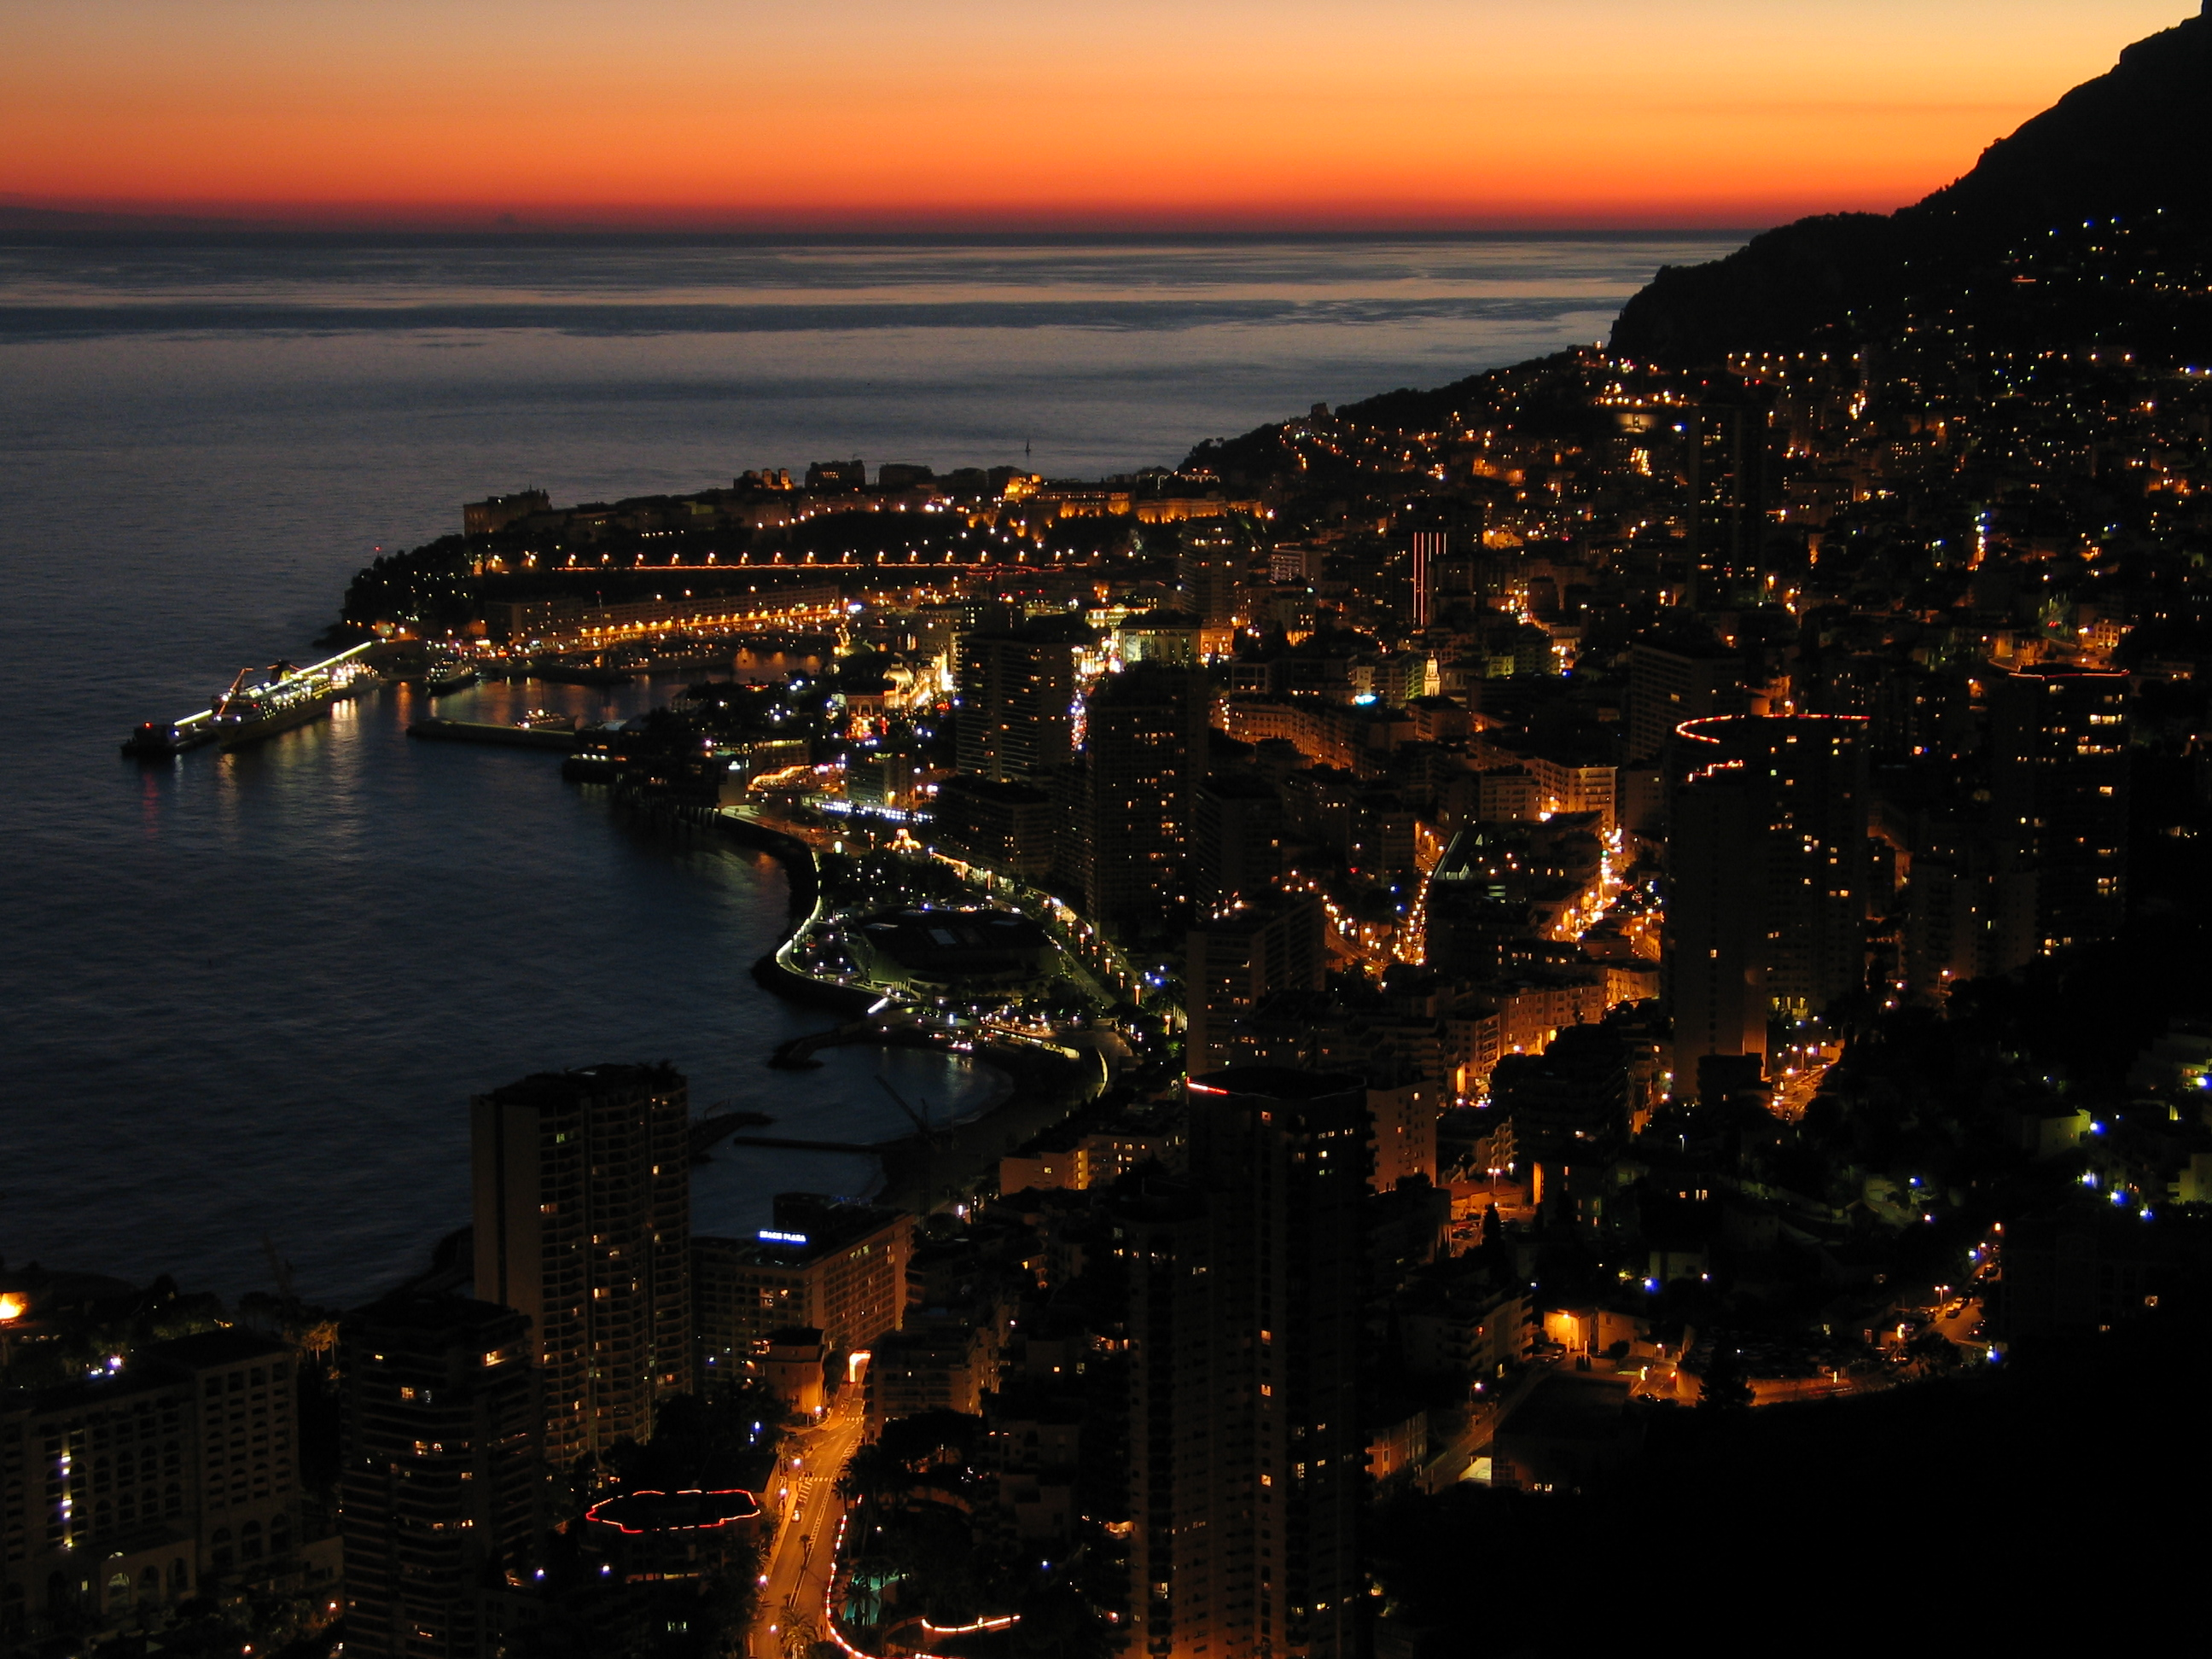 The evening glow of Monaco's Riviera coastline